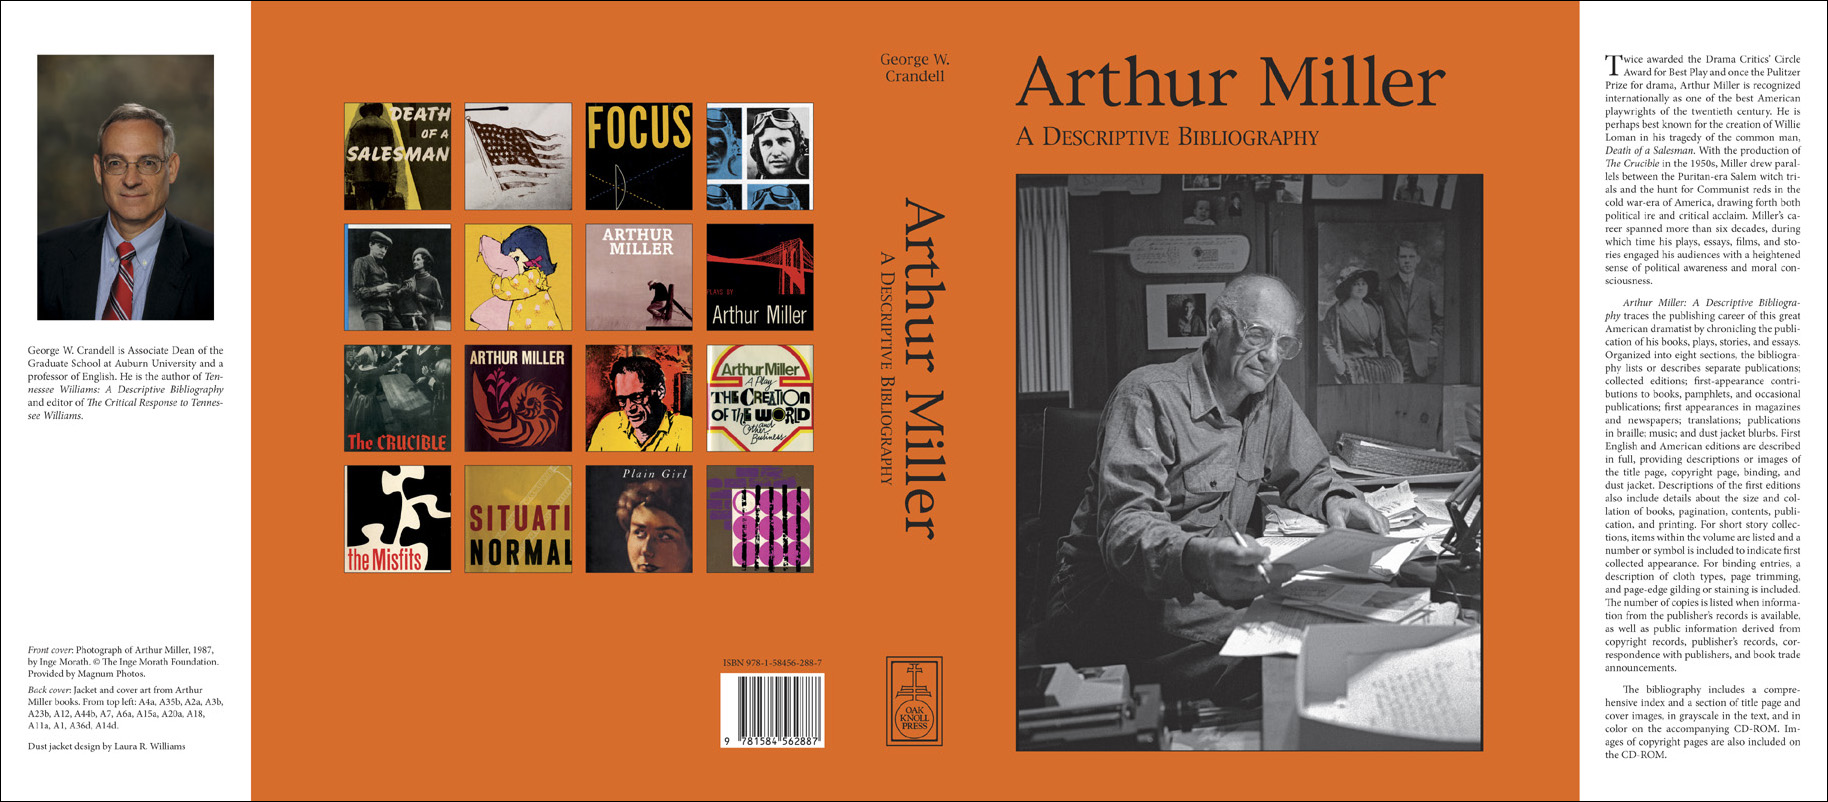 arthur miller essay am biography the arthur miller society essay  dr rosenbach and mr lilly the oak knoll biblio blog arthur miller a descriptive bibliography